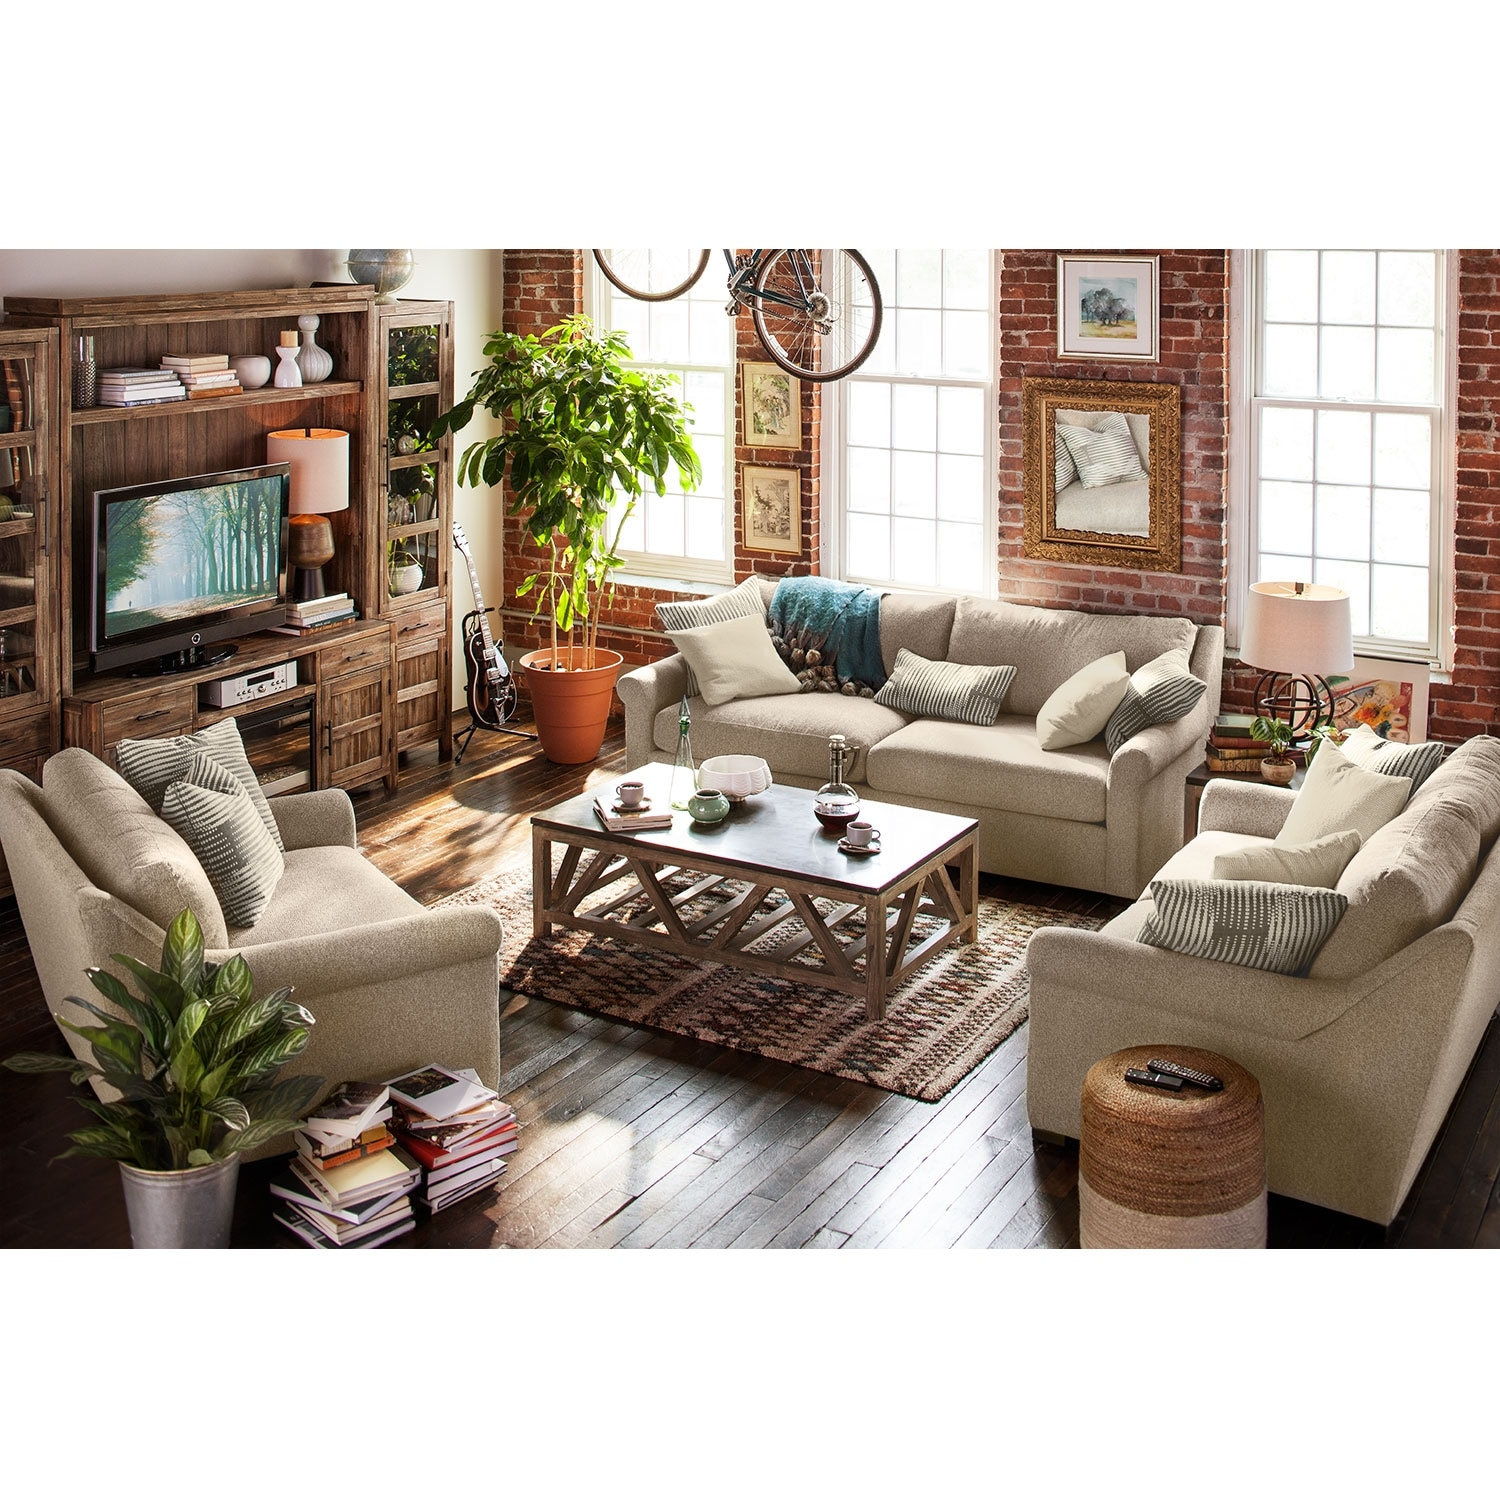 Roberston cumulus sofa loveseat and chair and a half set for Furniture 3 room package